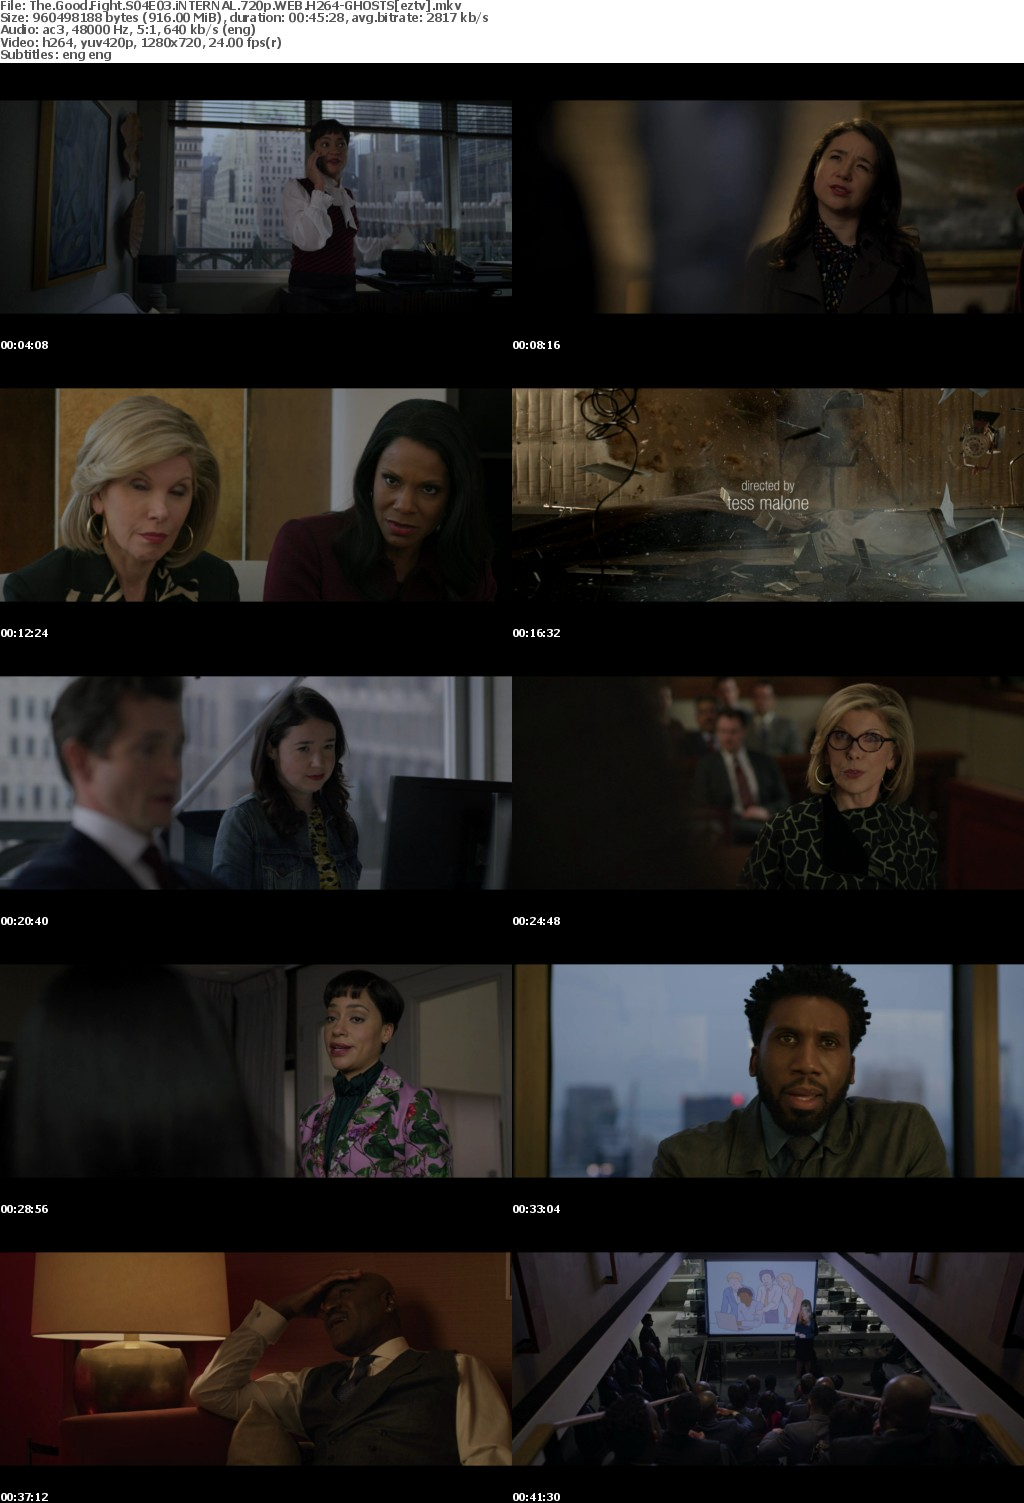 The Good Fight S04E03 iNTERNAL 720p WEB H264-GHOSTS